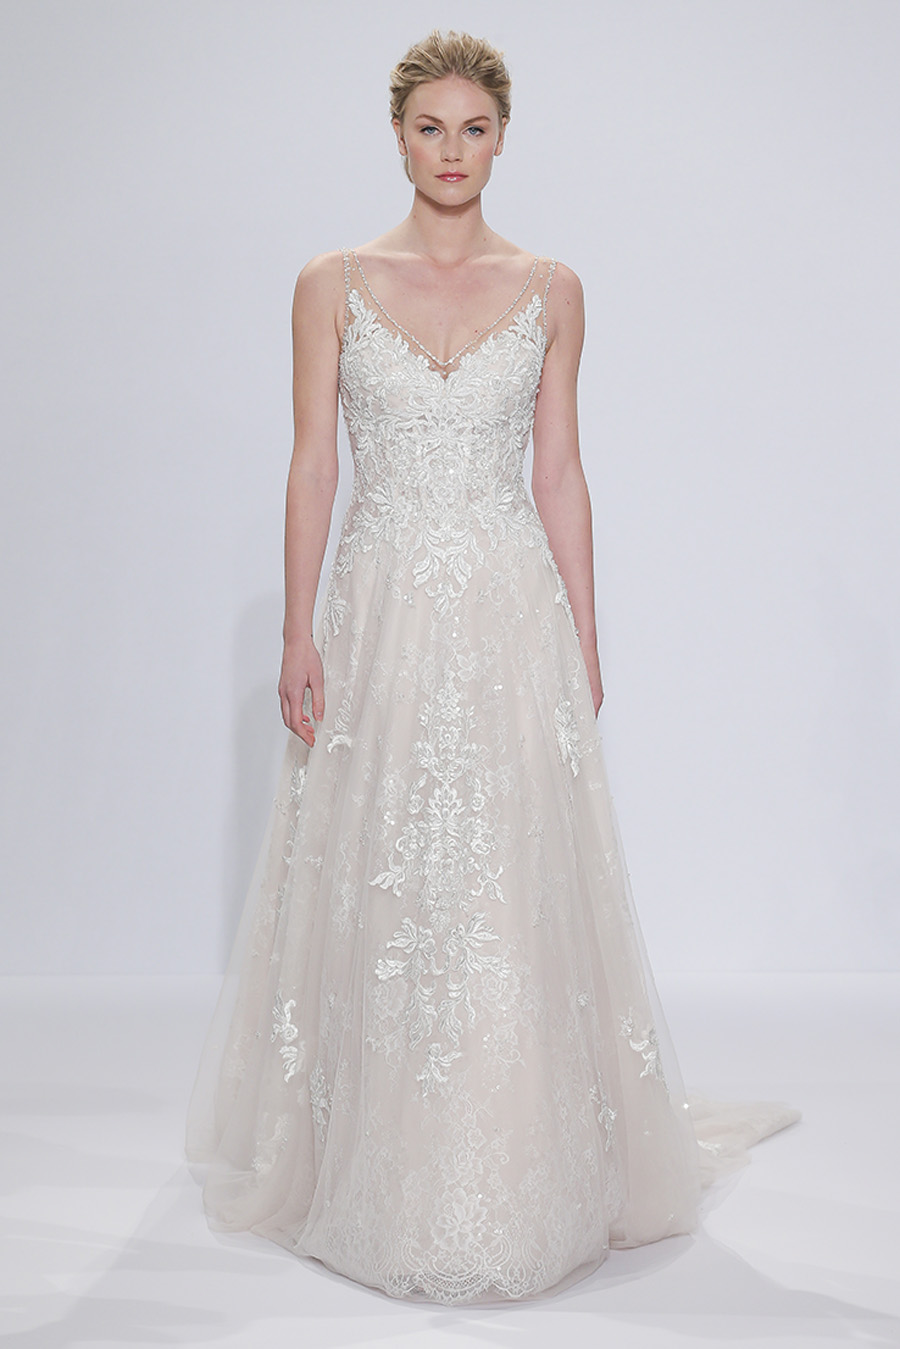 Say Yes To Dress Designer